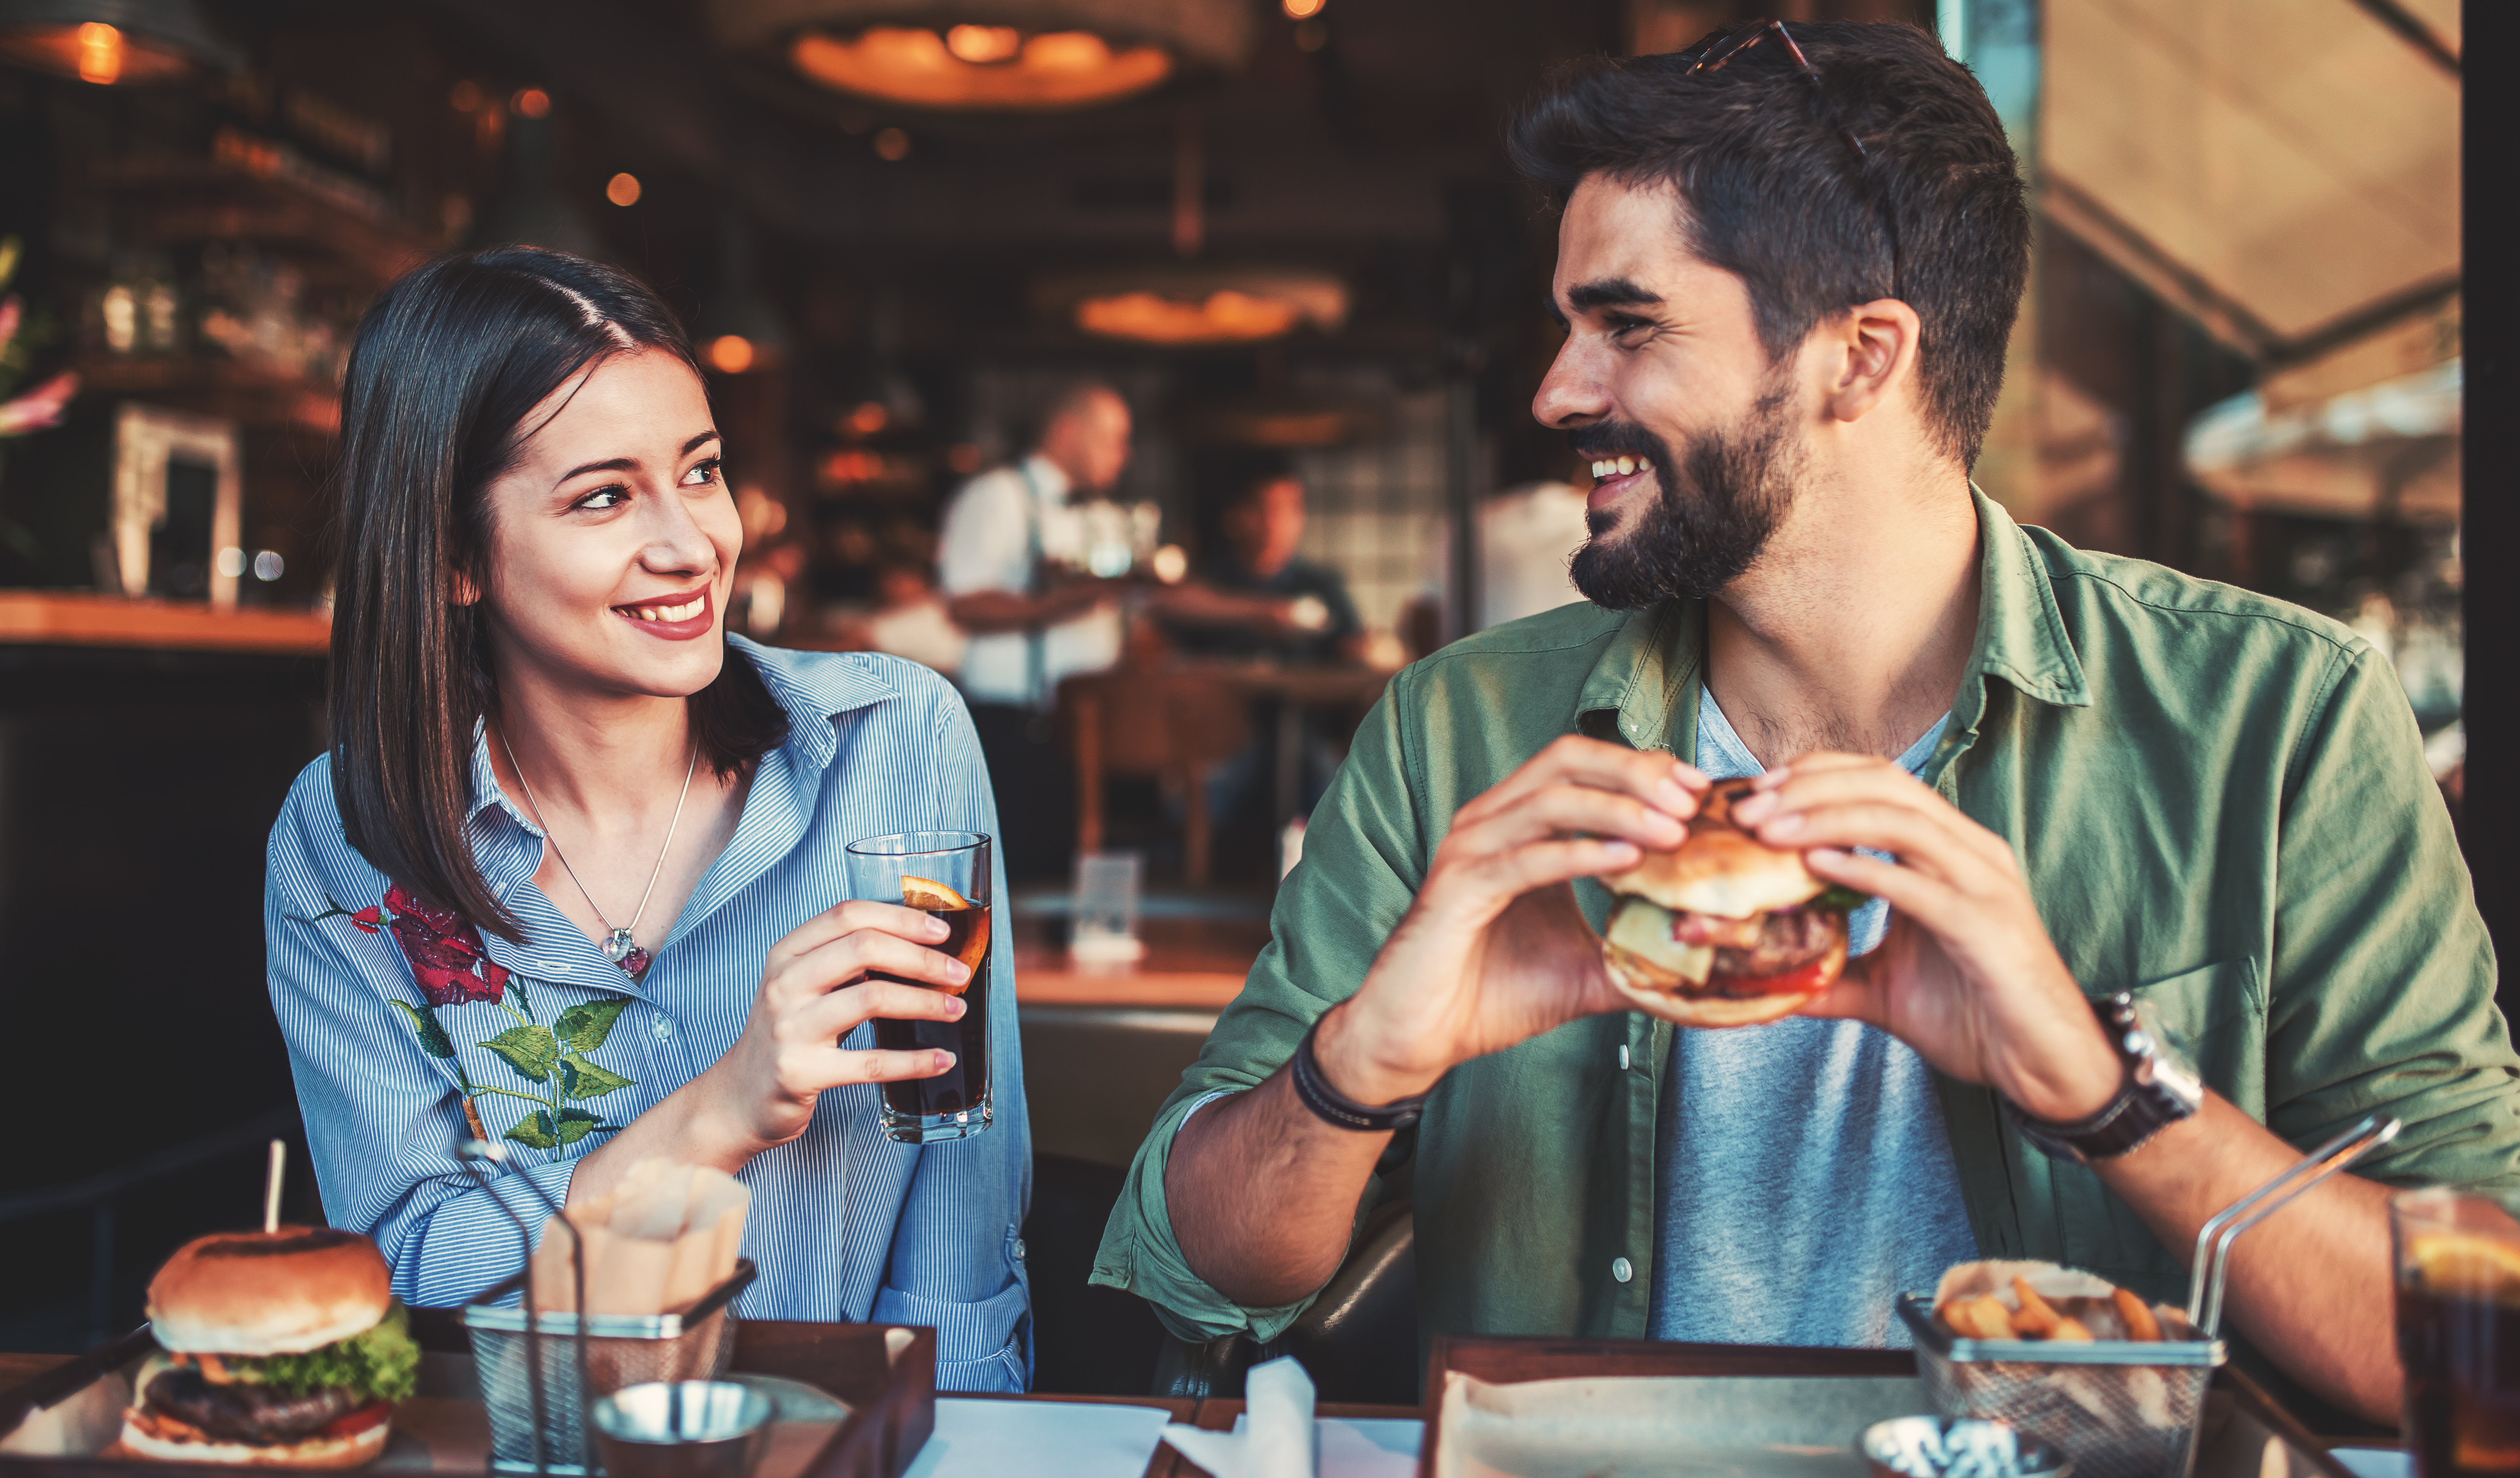 Man and woman enjoying food and drink in a restaurant